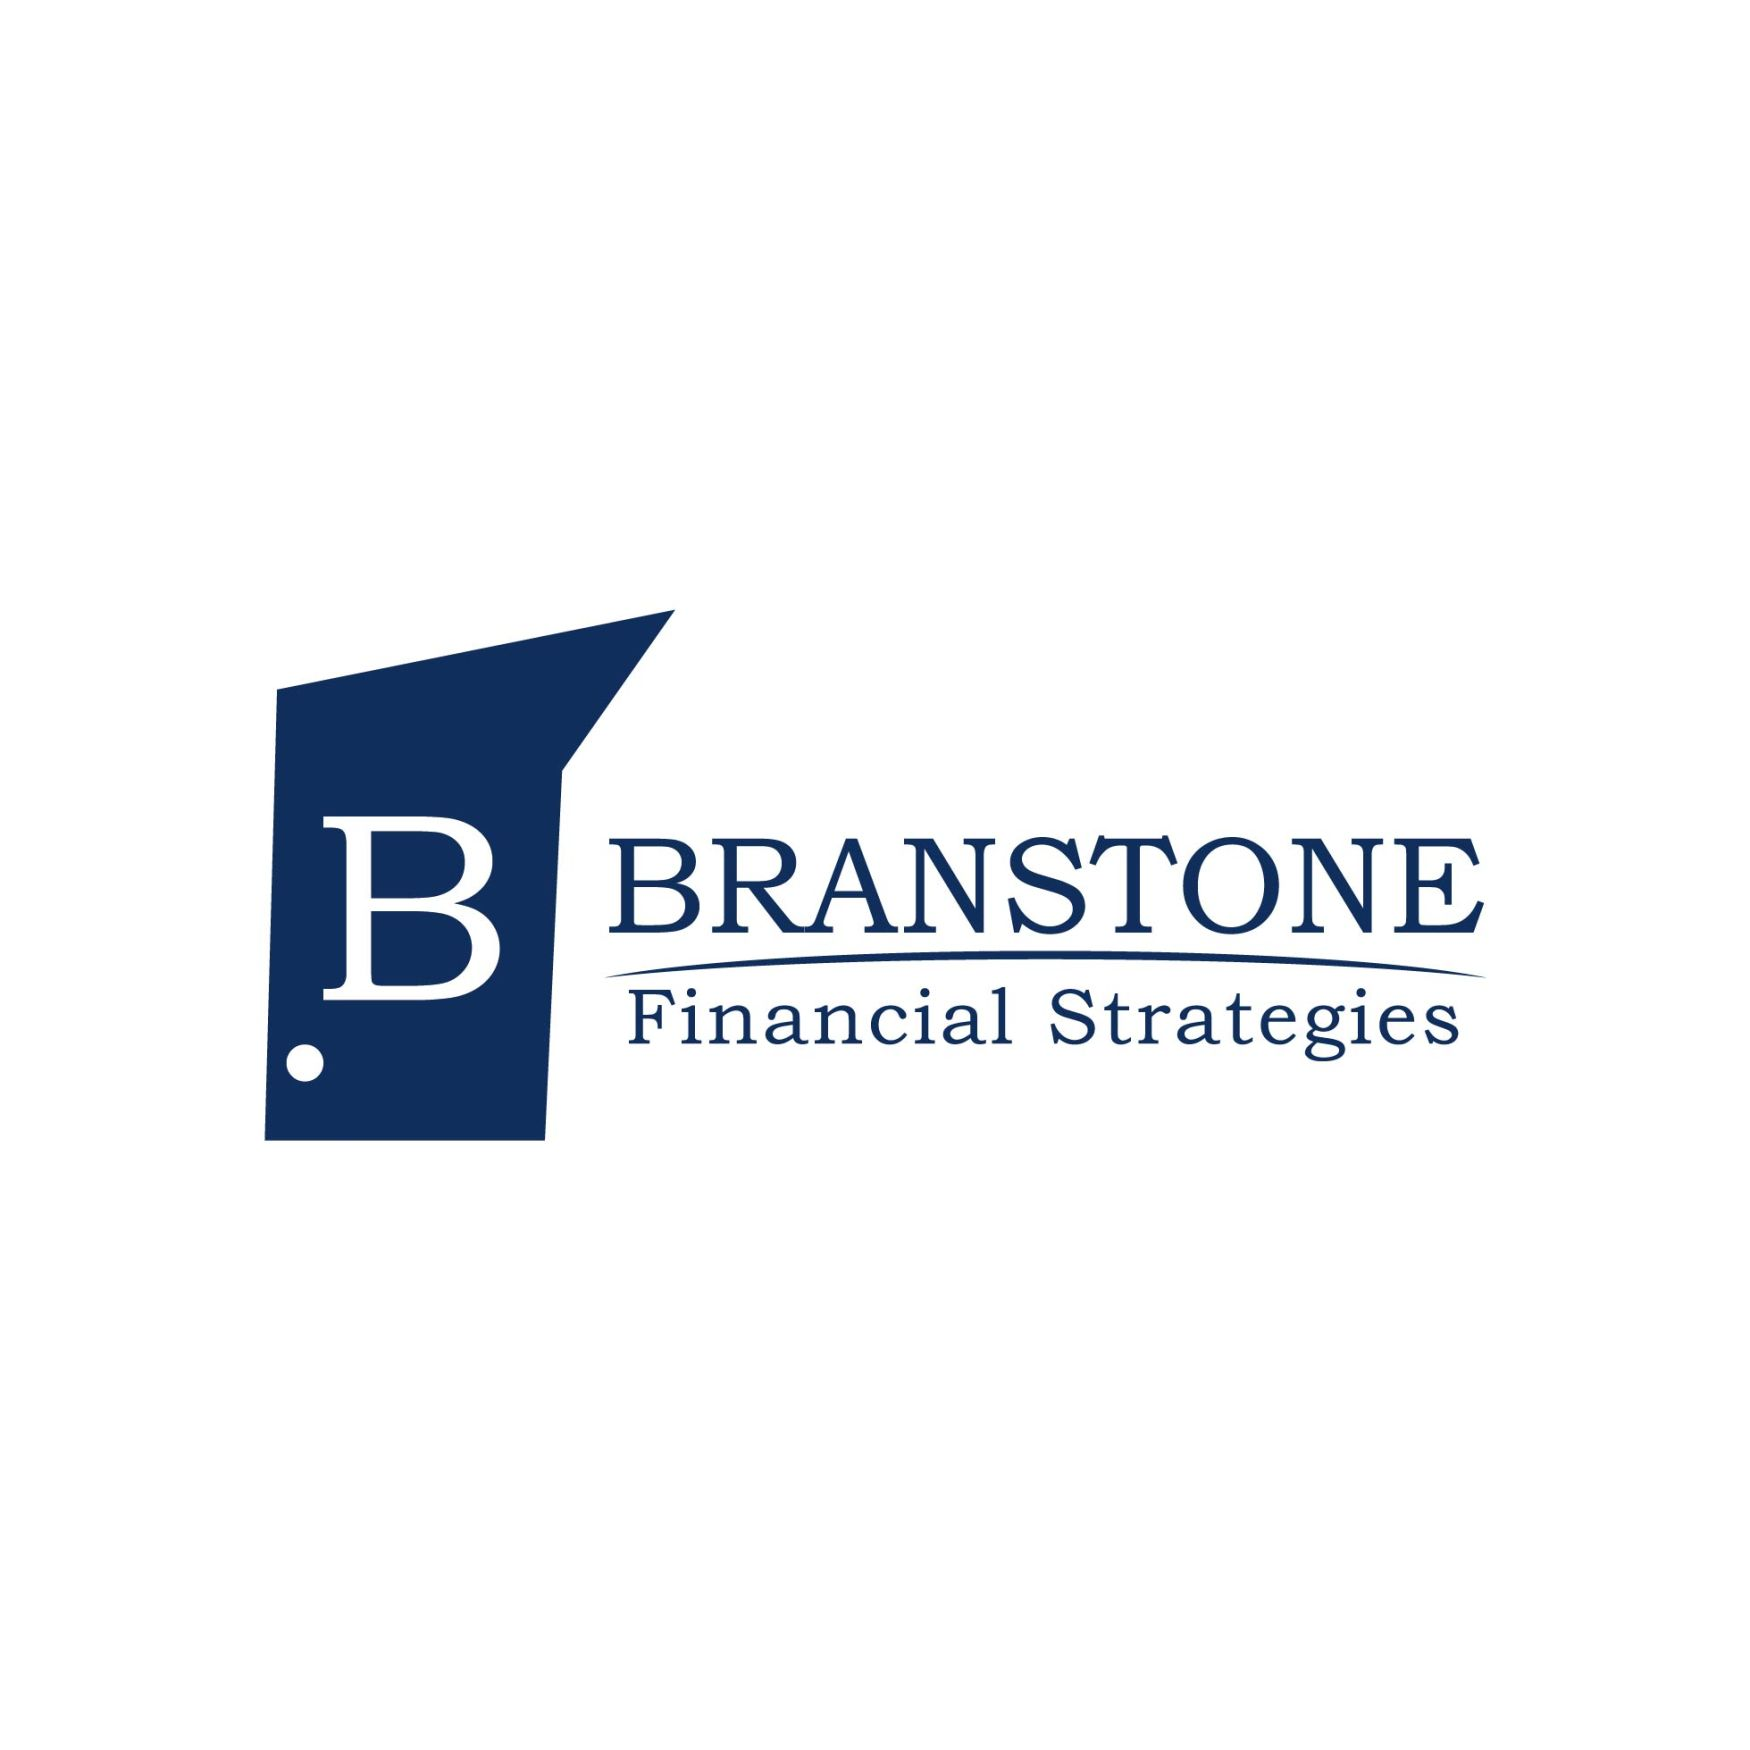 Logo Design by Cross Desain - Entry No. 30 in the Logo Design Contest Inspiring Logo Design for Branstone Financial Strategies.